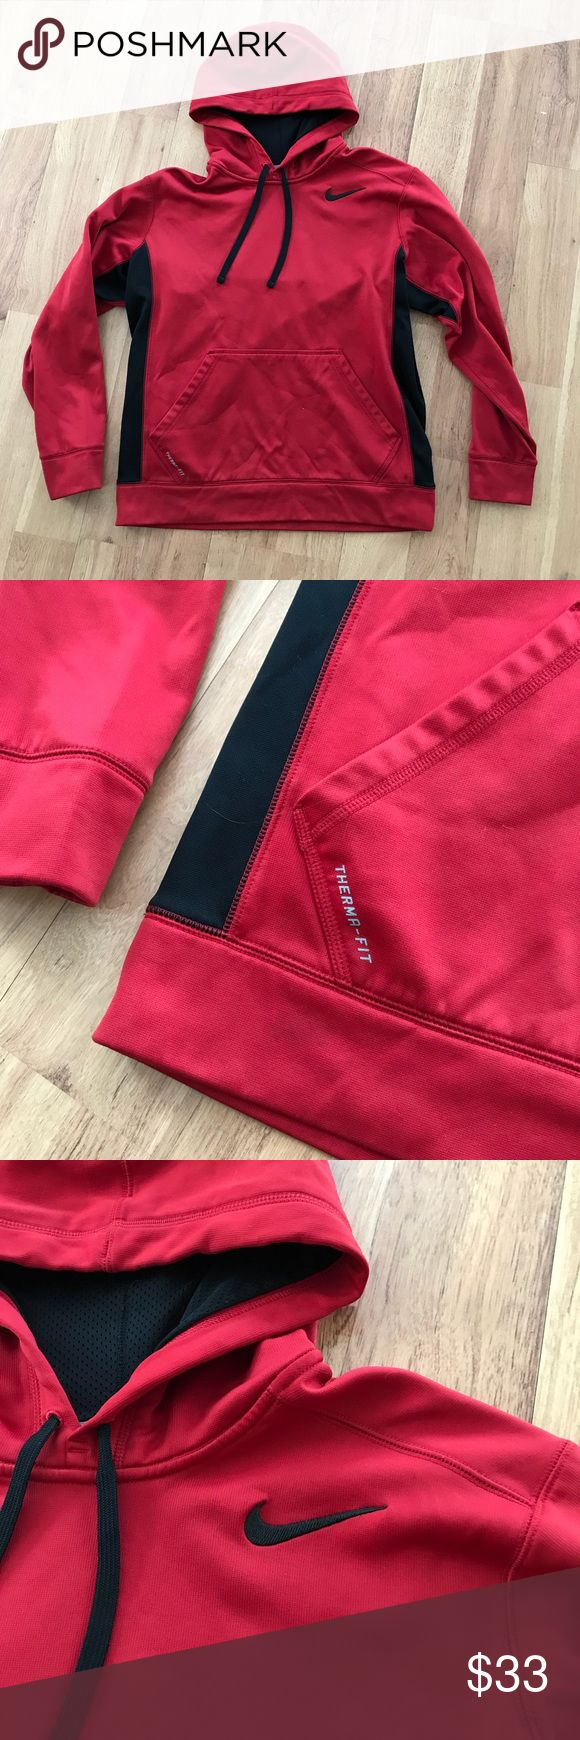 Ships today! Nike Red and Black Men's Hoodie ⚜️I love receiving offers through the offer button!⚜️ Good condition, as seen in pictures! Fast same or next day shipping!📨 Open to offers but I don't negotiate in the comments so please use the offer button😊 Check out the rest of my closet for more Adidas, Lululemon, Tory Burch, Urban Outfitters, Free People, Anthropologie, Topshop, Asos, Revolve, Zara, and American Apparel! 1.4.55 Nike Red and Black Men's Hoodie Size Medium Nike Shirts…